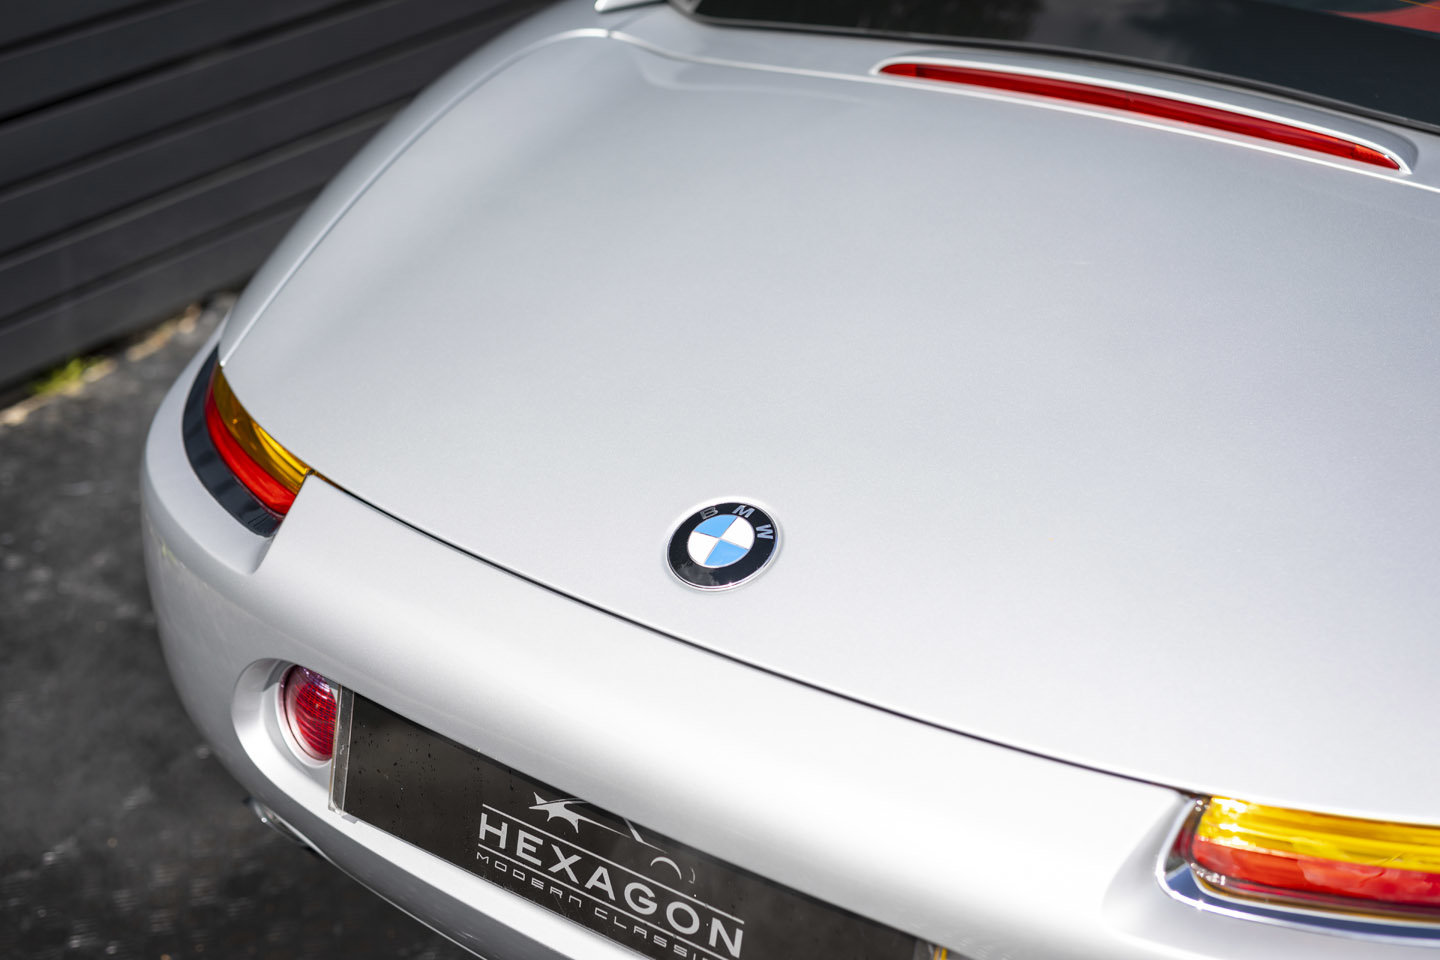 2001 BMW Z8 Roadster ONLY 10500 MILES EUROPEAN For Sale (picture 10 of 22)